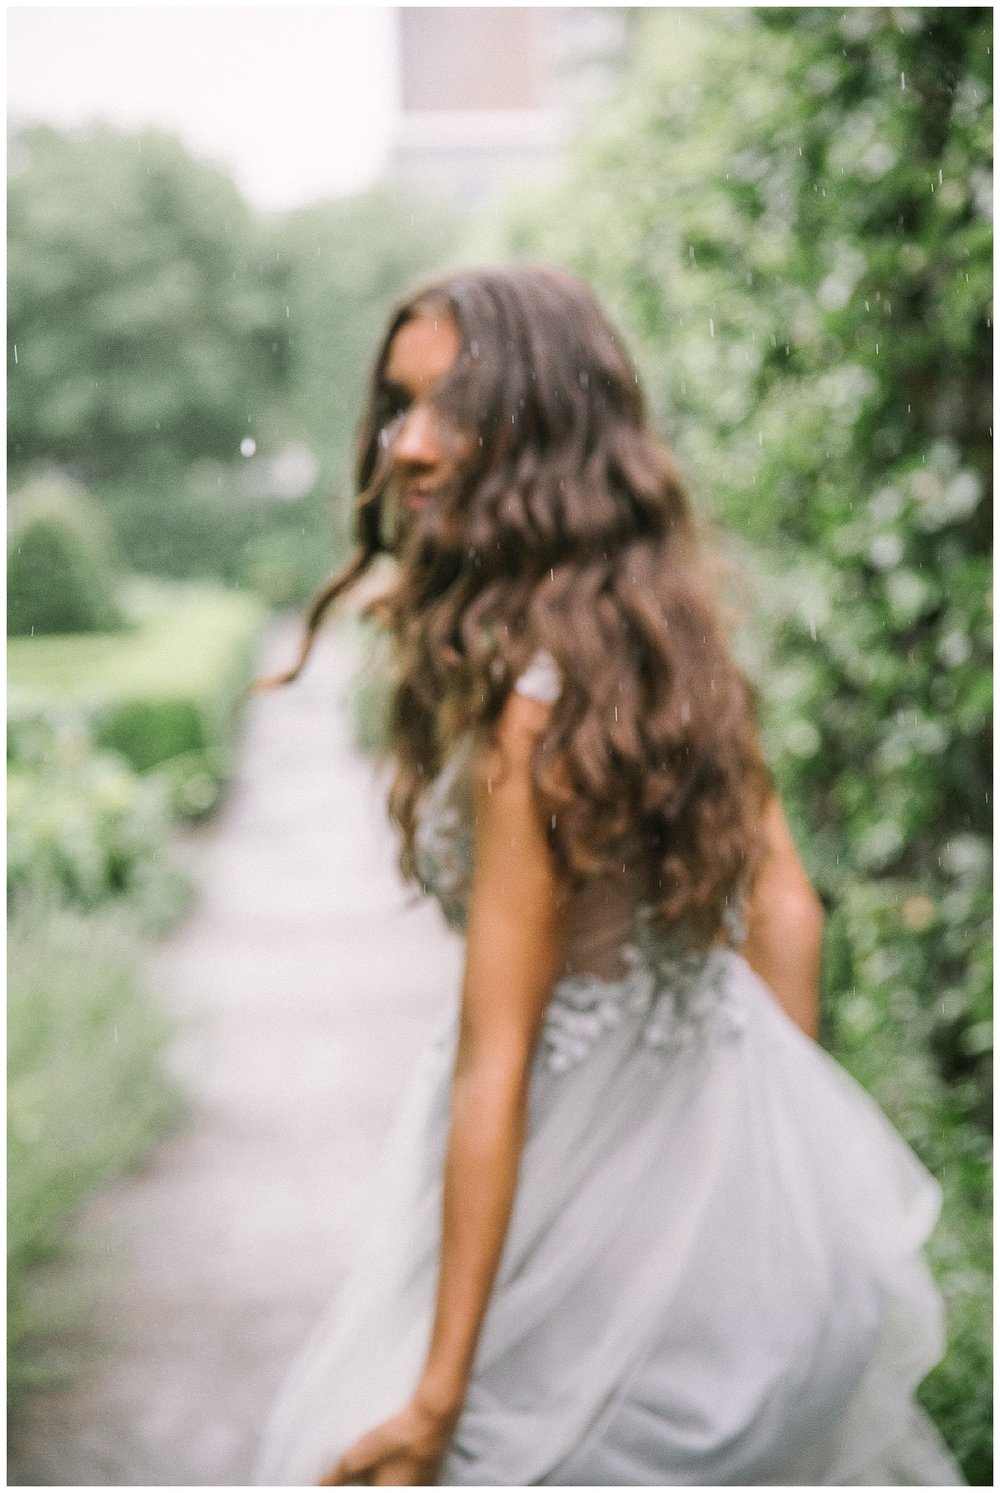 Ellen-Ashton-Photography-Dallas-Wedding-Photographers-Destination-Wedding-Photographer-Paris-Wedding-Photographer-Magnolia-Rouge-Grit-and-Gold-Weddings-and-Events-Destination-Bridal-Session-Montreal-Canada-Montreal-Wedding-Photographer-Cheteau-Ramezay-Wedding